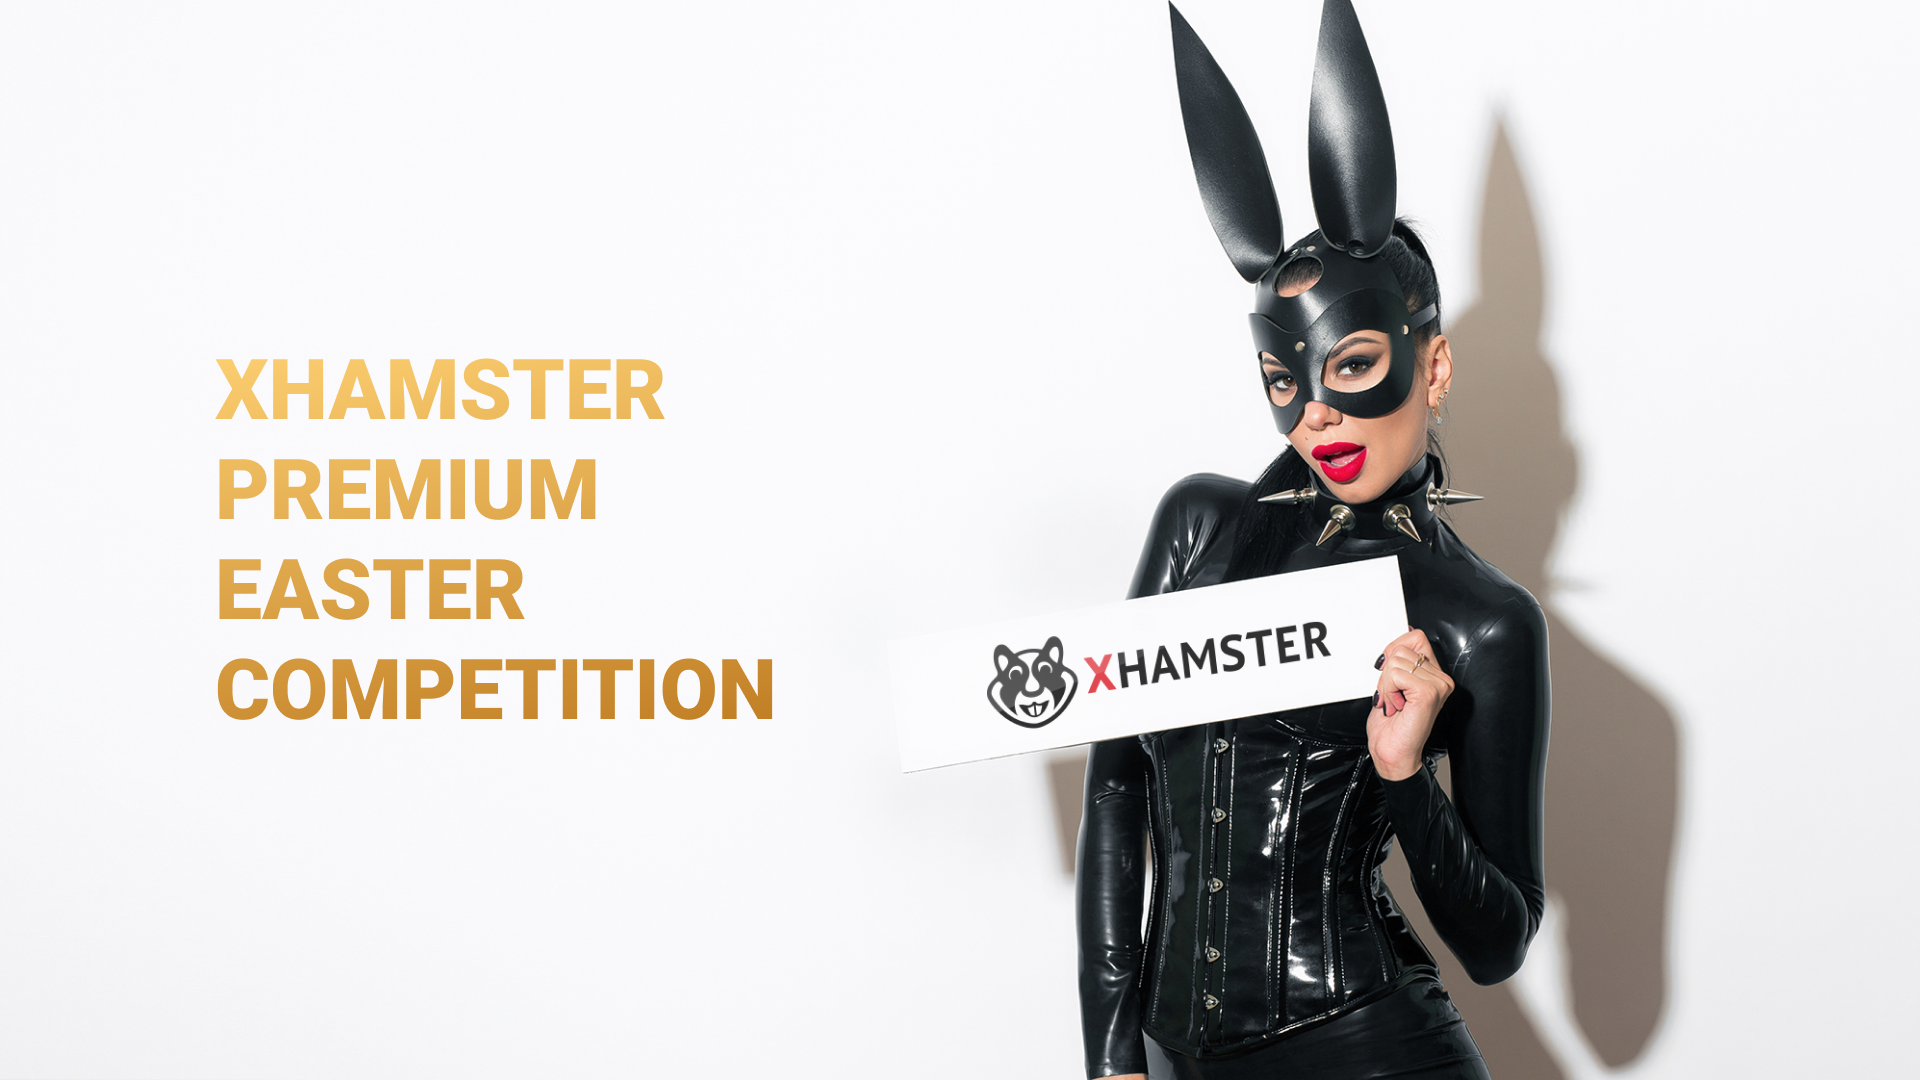 Win $500 with xHamster!